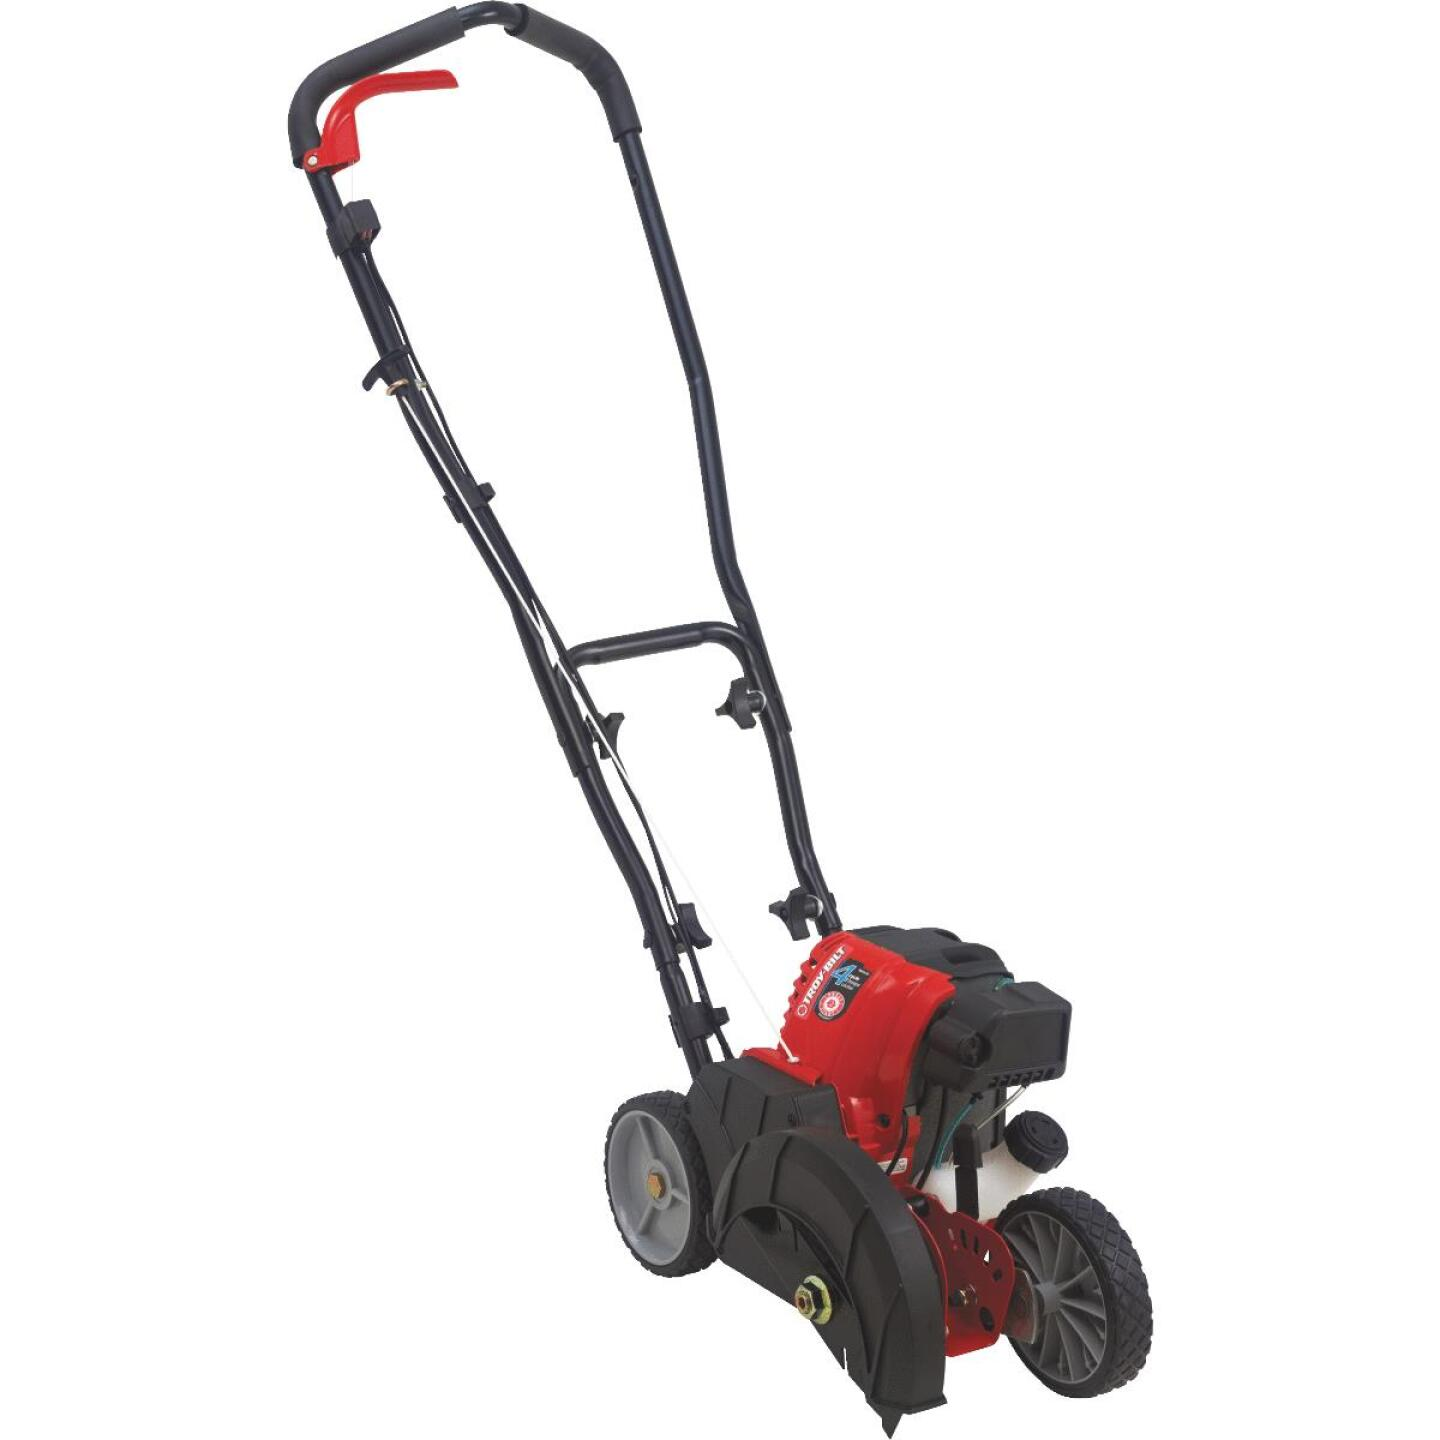 Troy-Bilt TBE304 30cc 4-Cycle Edger Image 1